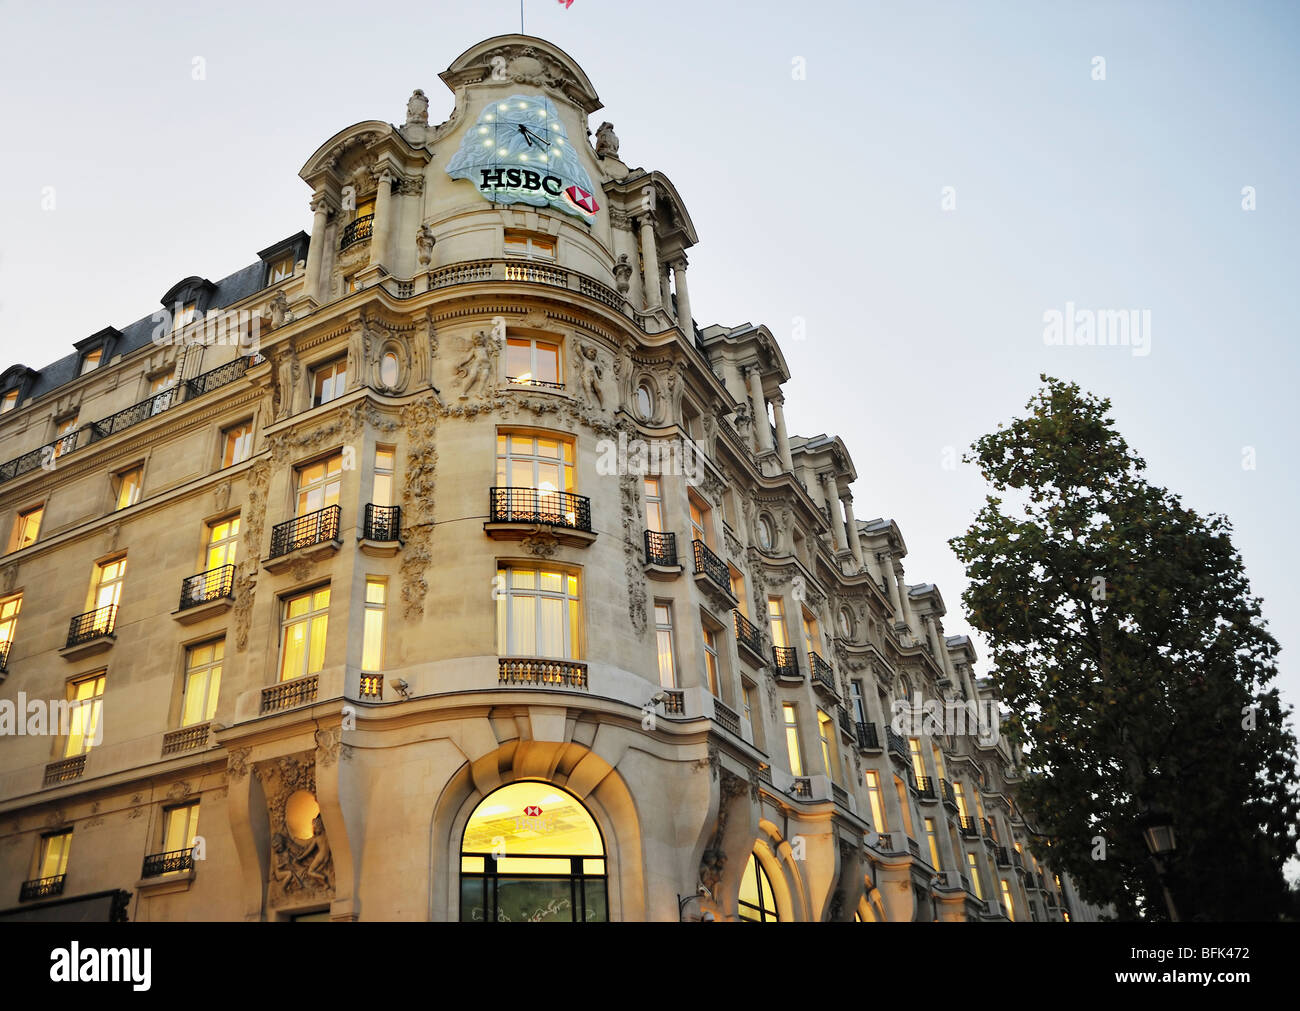 Paris France Commercial Architecture Hsbc Bank Corporate Stock Photo 26850630 Alamy